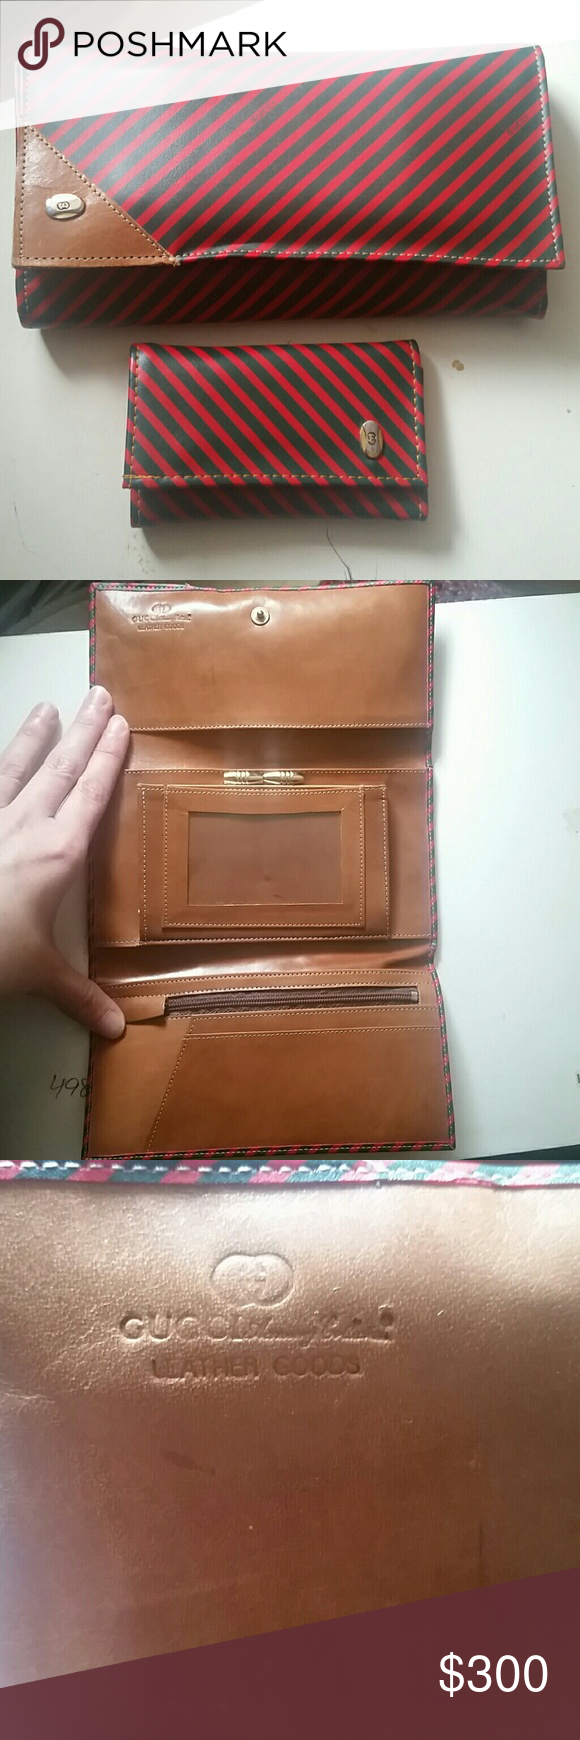 Vintage Gucci Wallet & Key Wallet Matching Set This red